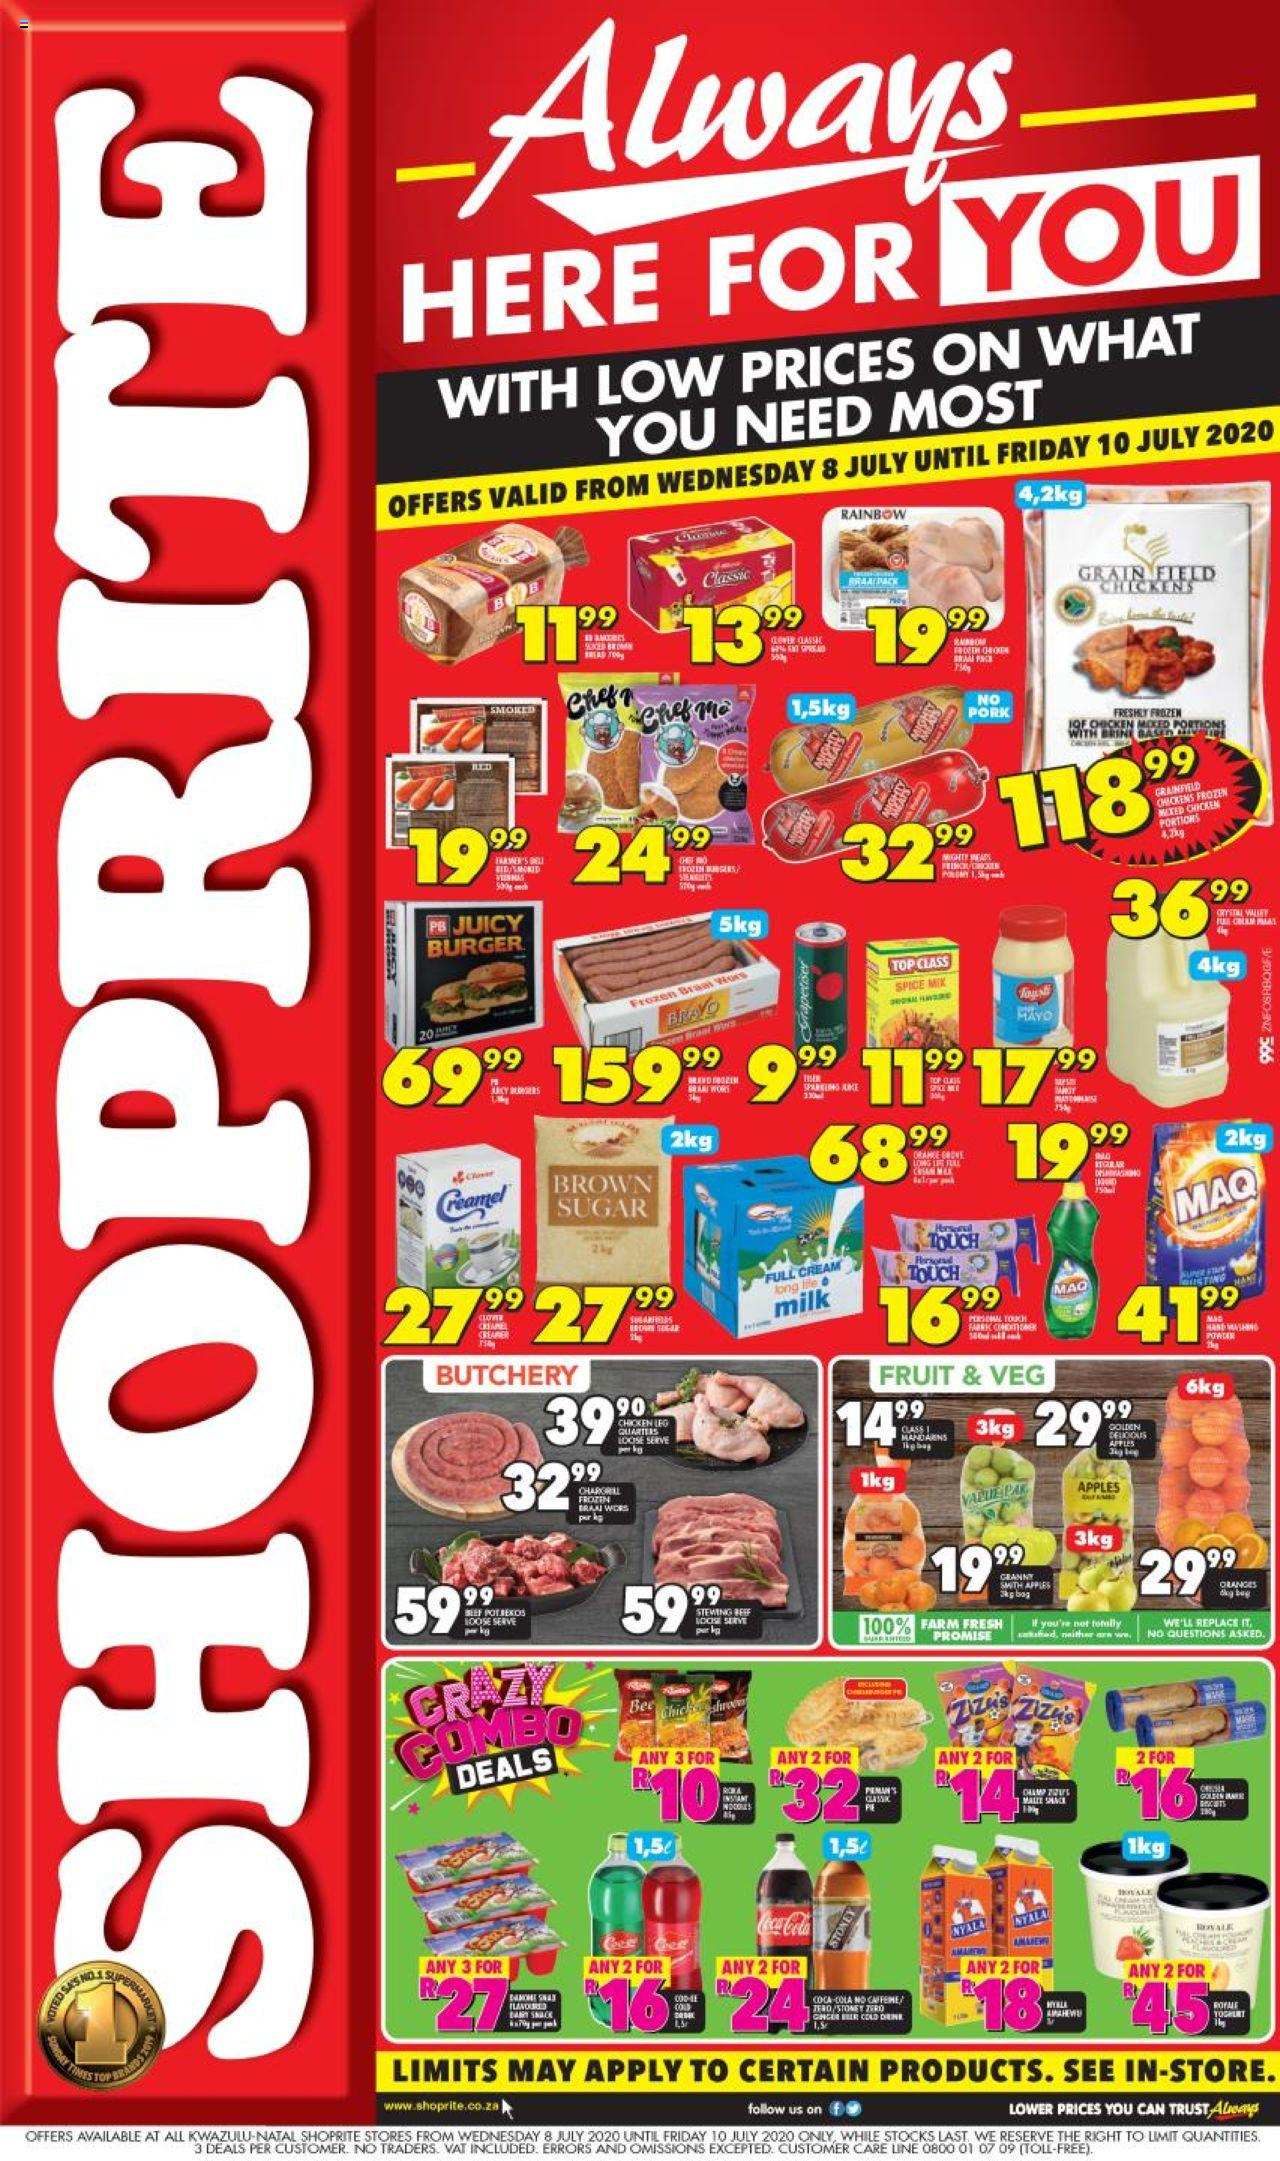 shoprite specials always here for you 8 july 2020